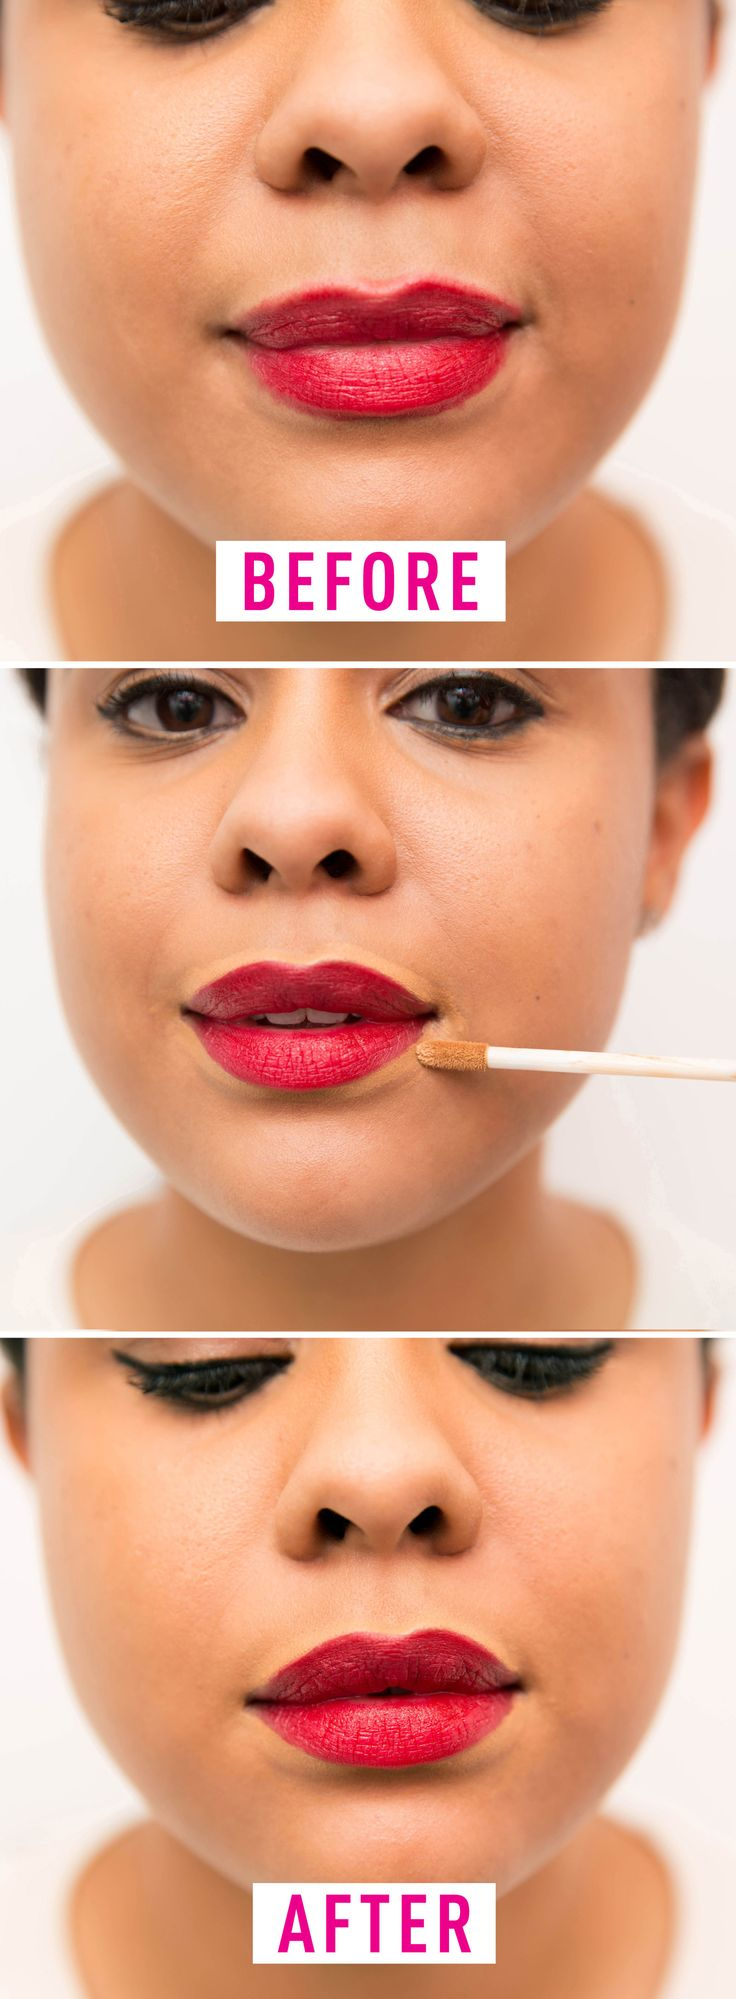 Don't apply lipstick without sharpening the edges. This will make the lipstick bleed into the natural creases of the skin around your mouth.